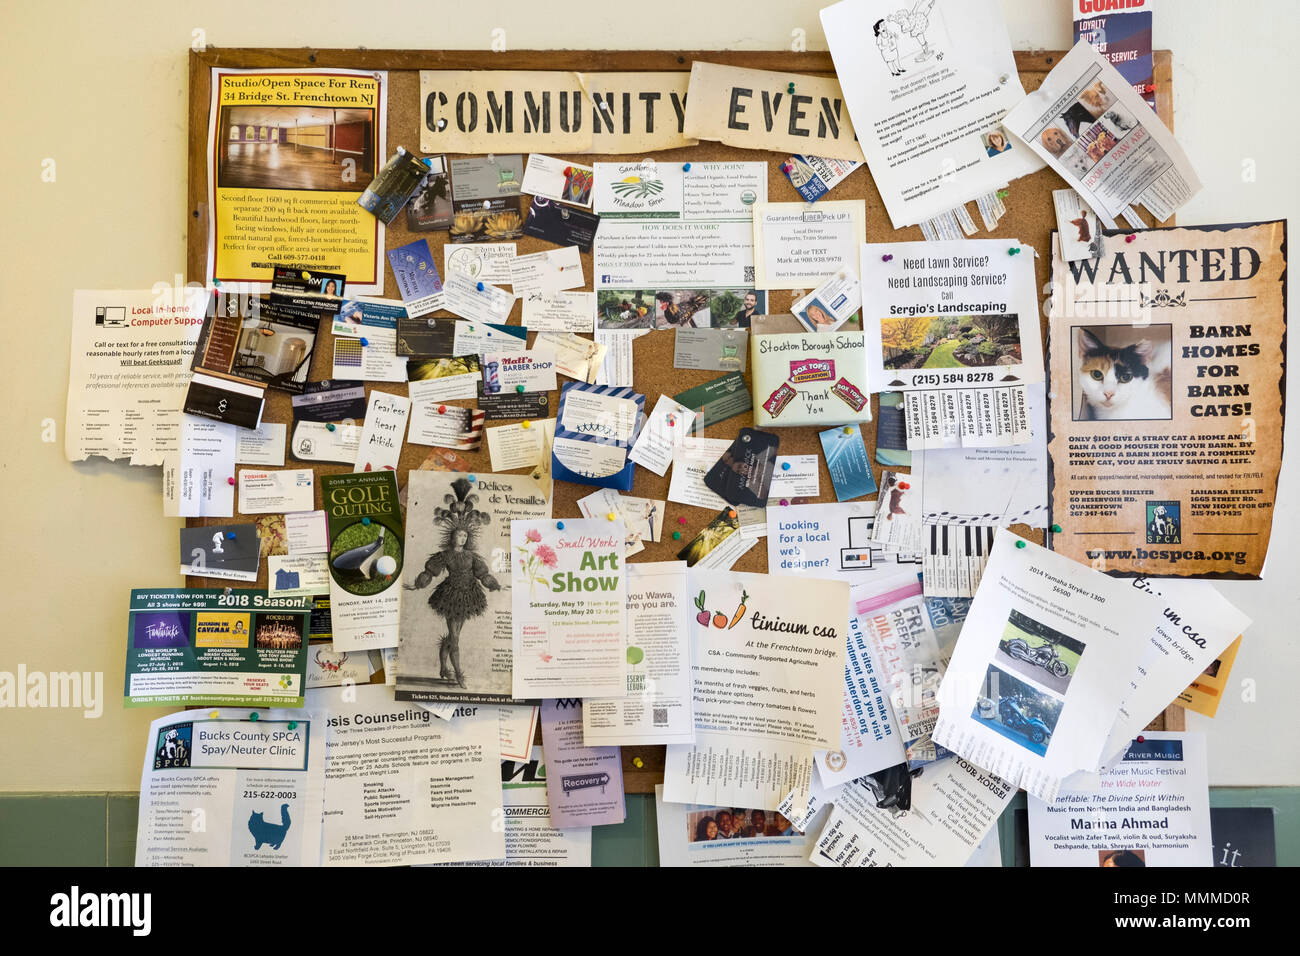 Community Bulletin board with postings in a small town post office, Stockton, New Jersey, USA - Stock Image